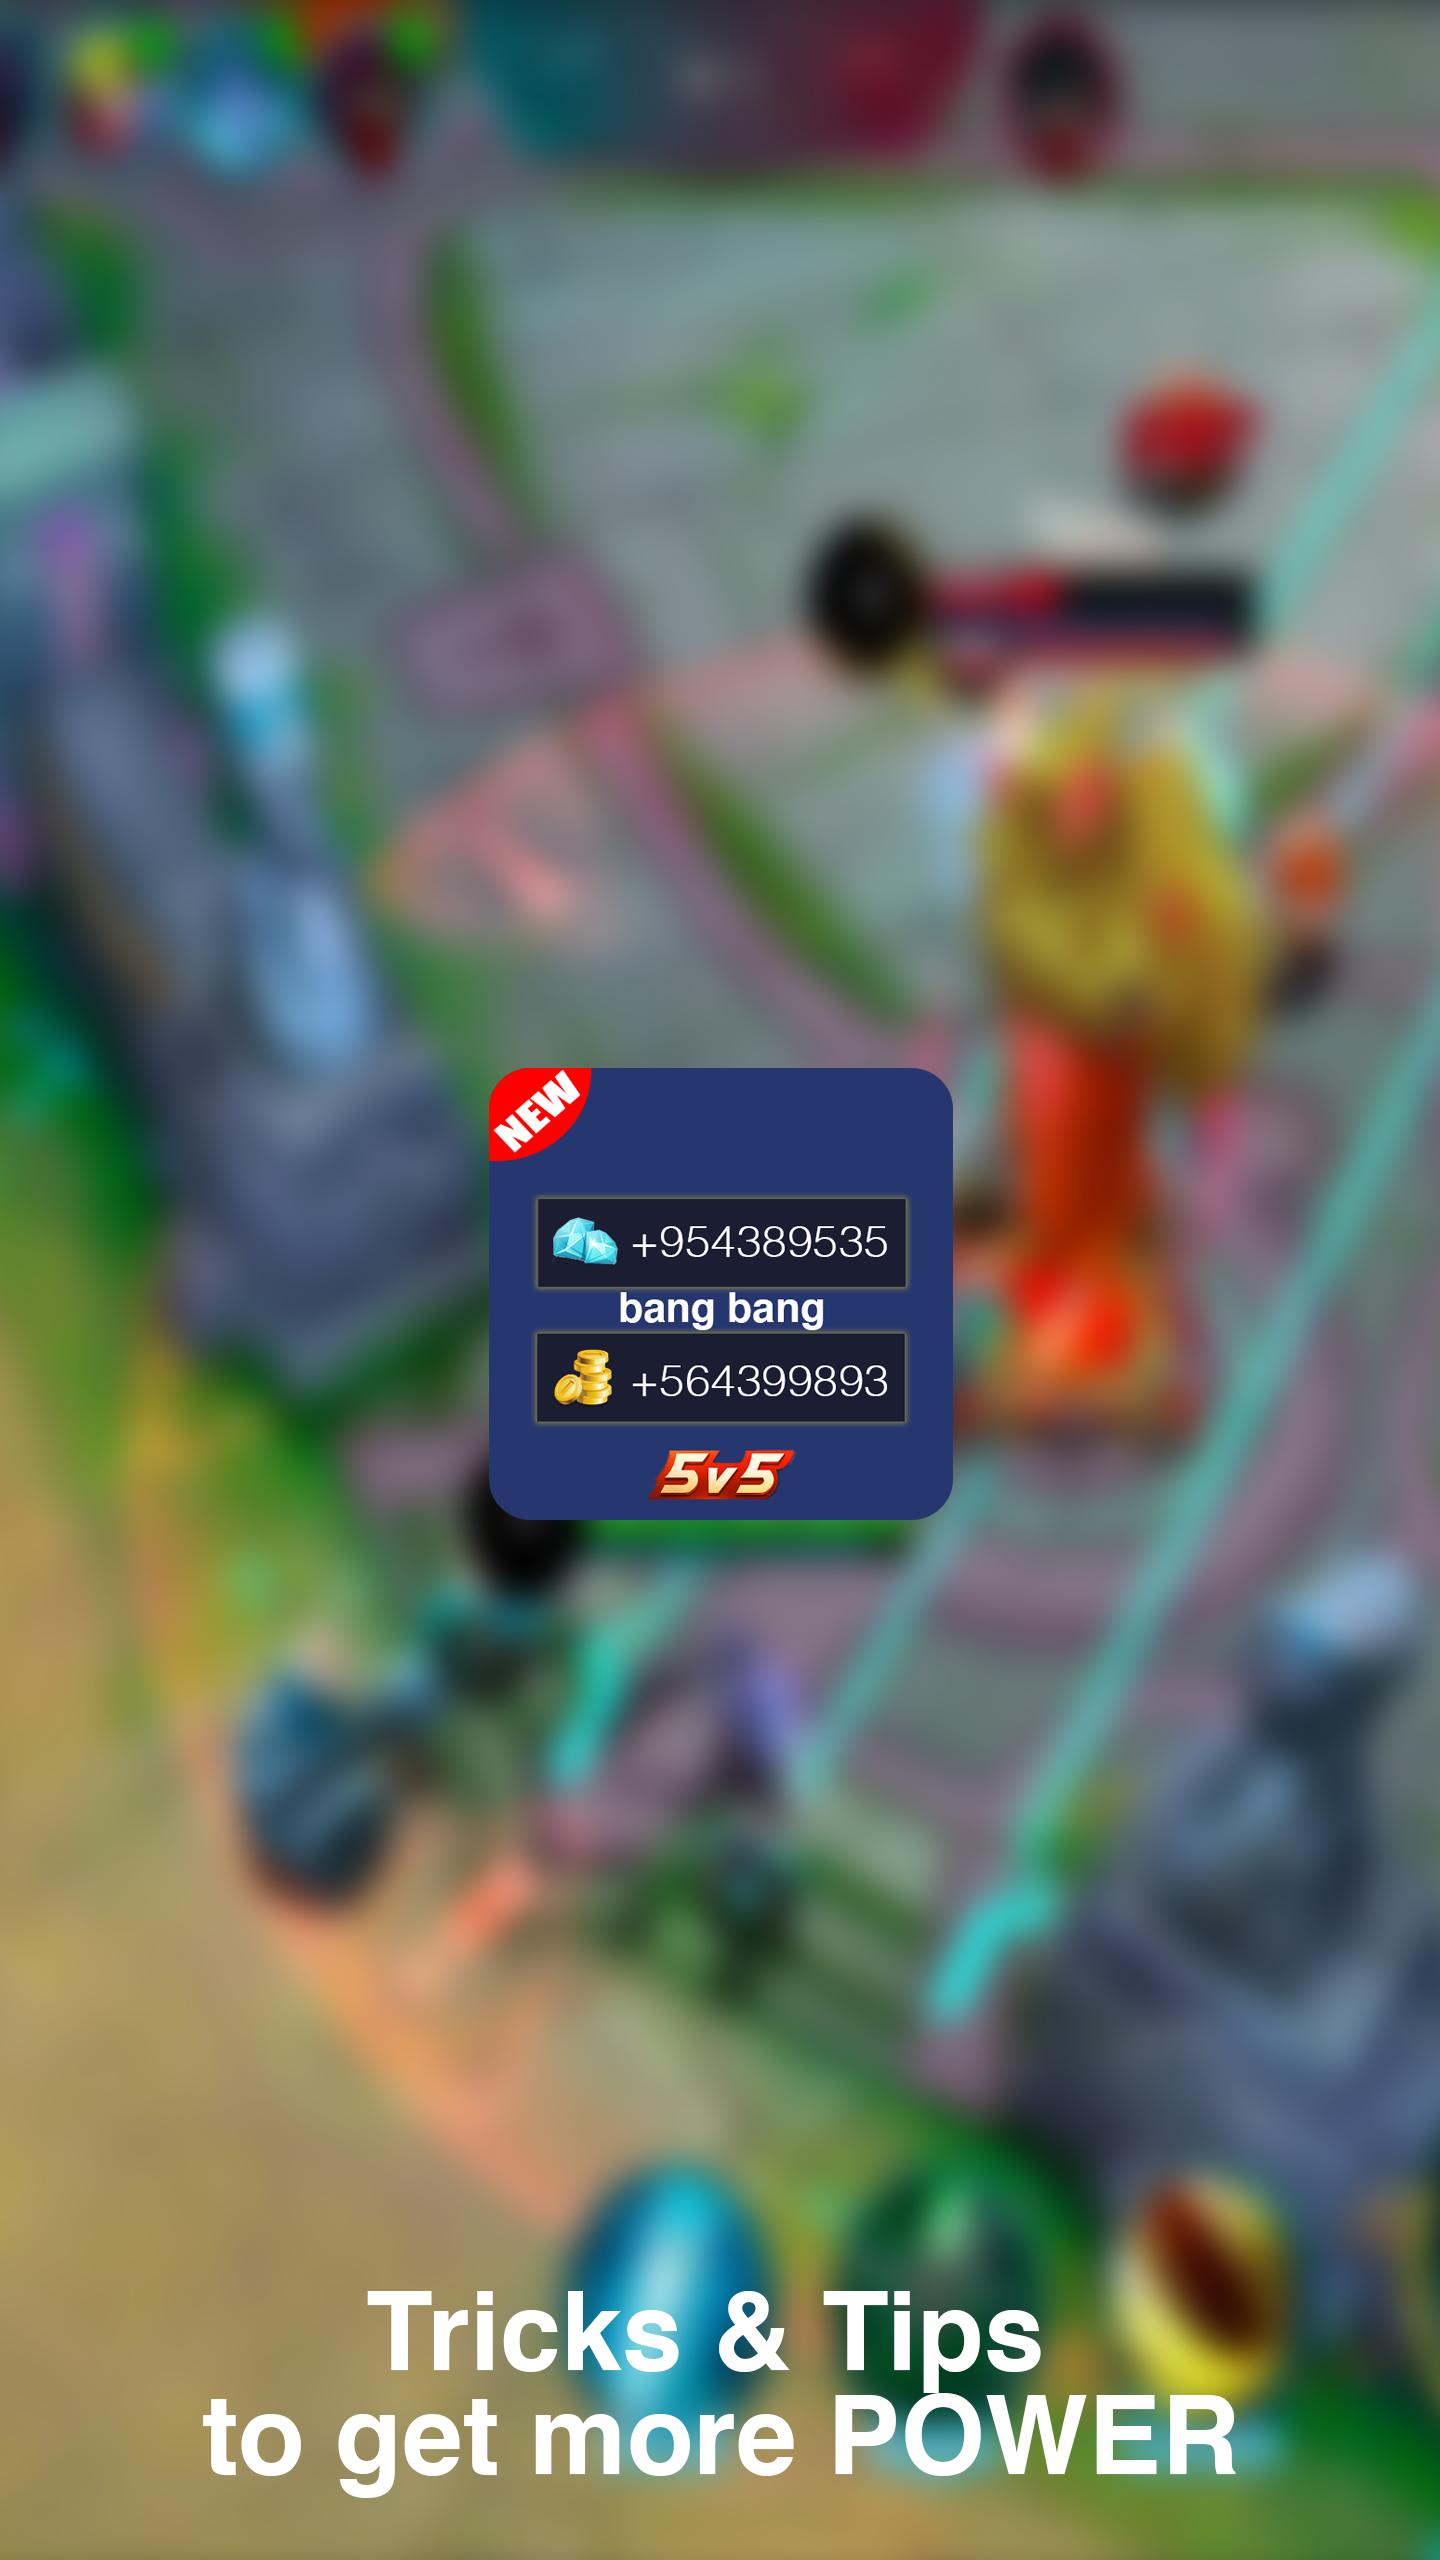 Trick & Tips for Mobile Legend Bang bang Easily for Android